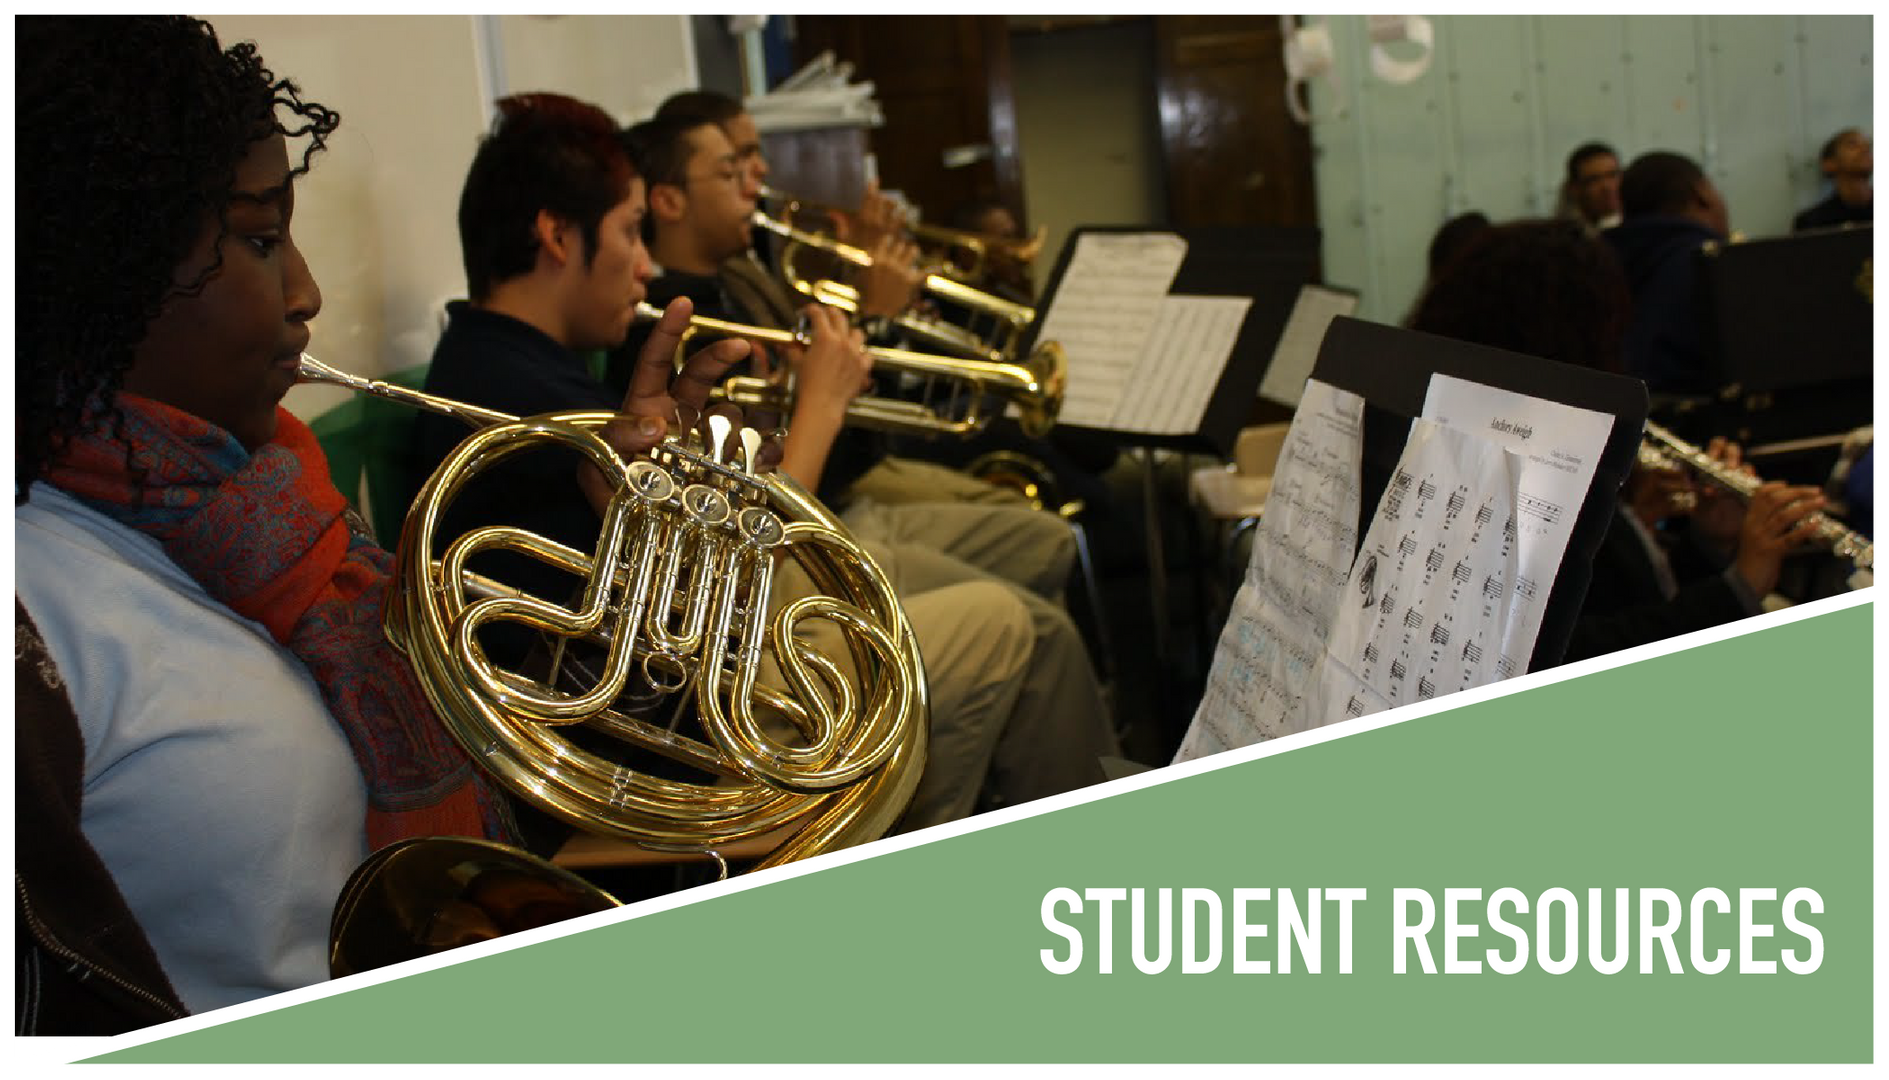 Student Corner: Students playing musical instruments